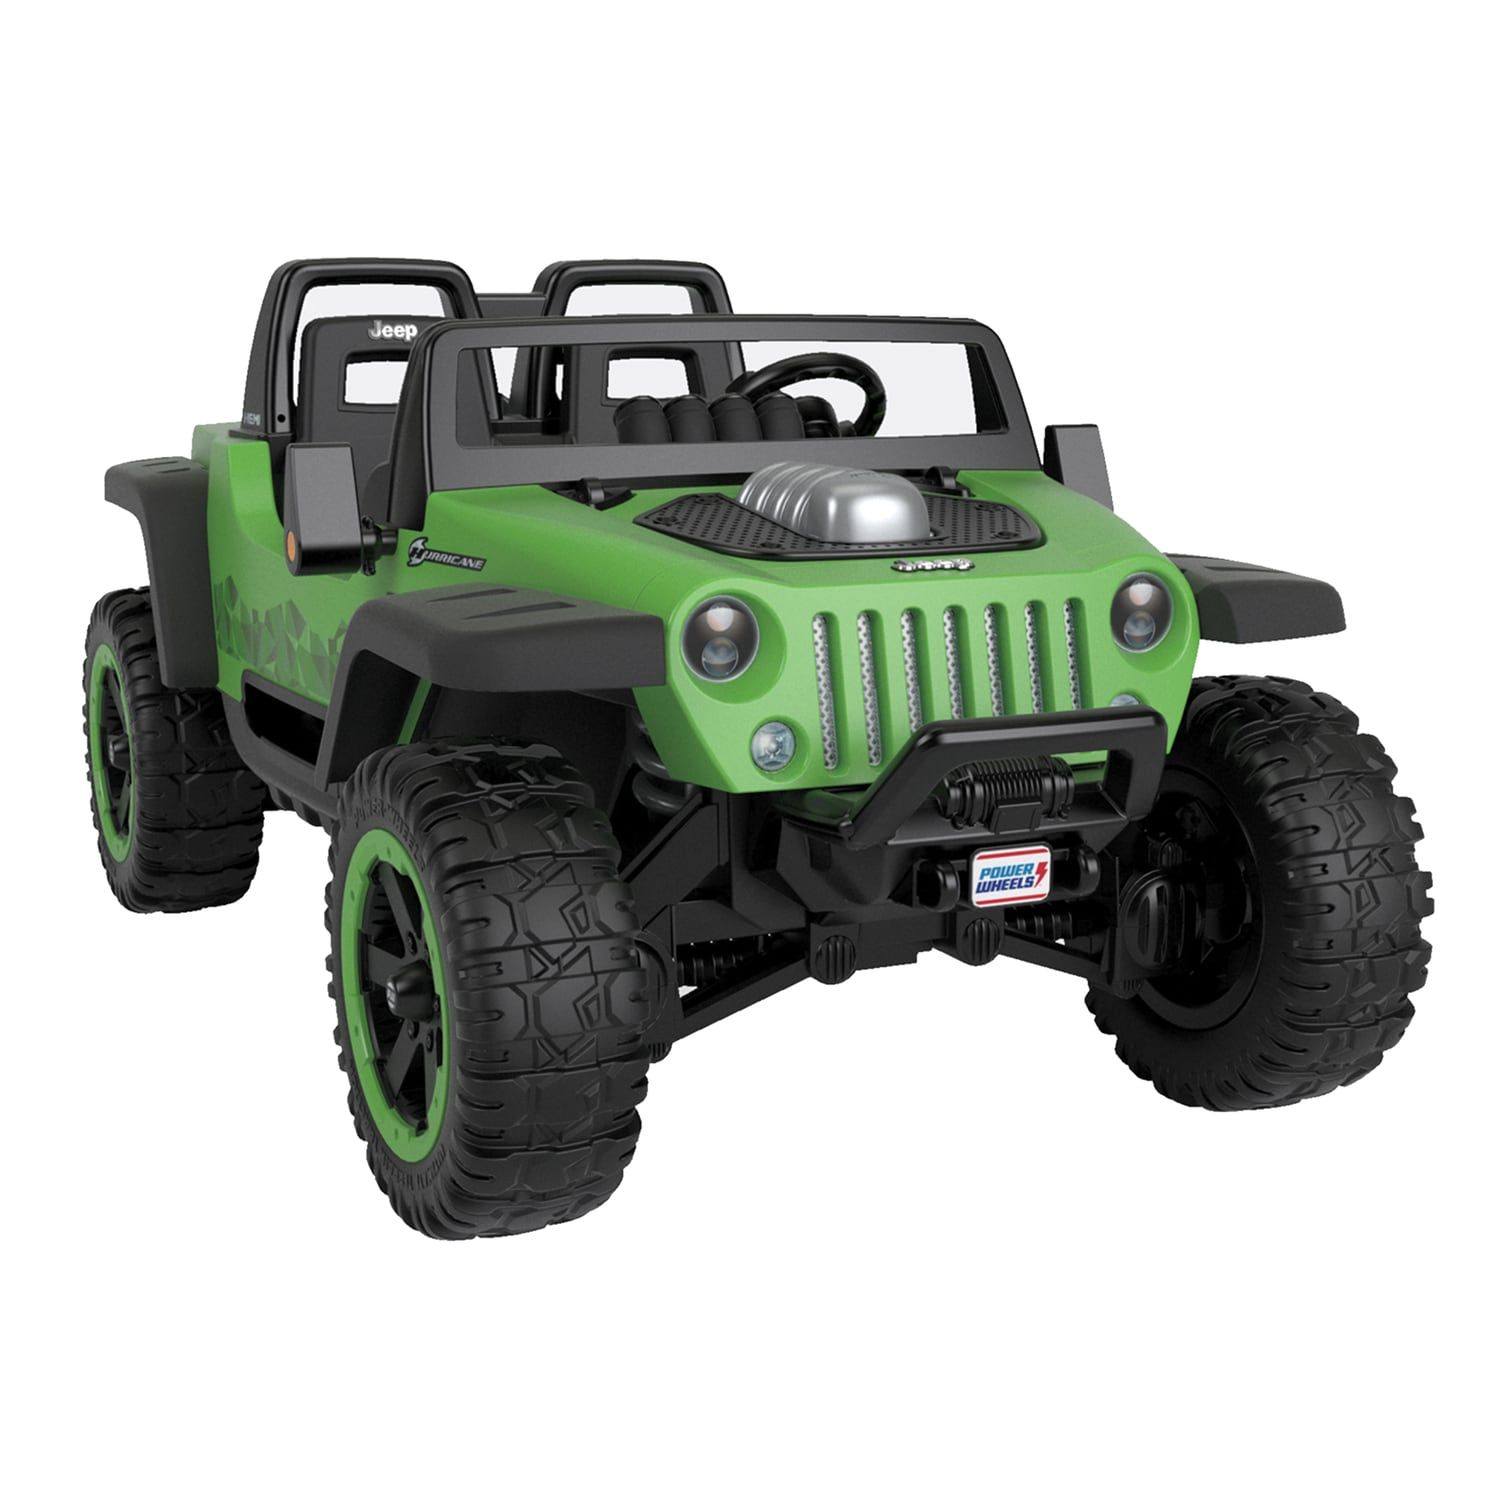 Power Wheels Jeep Hurricane Extreme Affiliate Wheels Sponsored